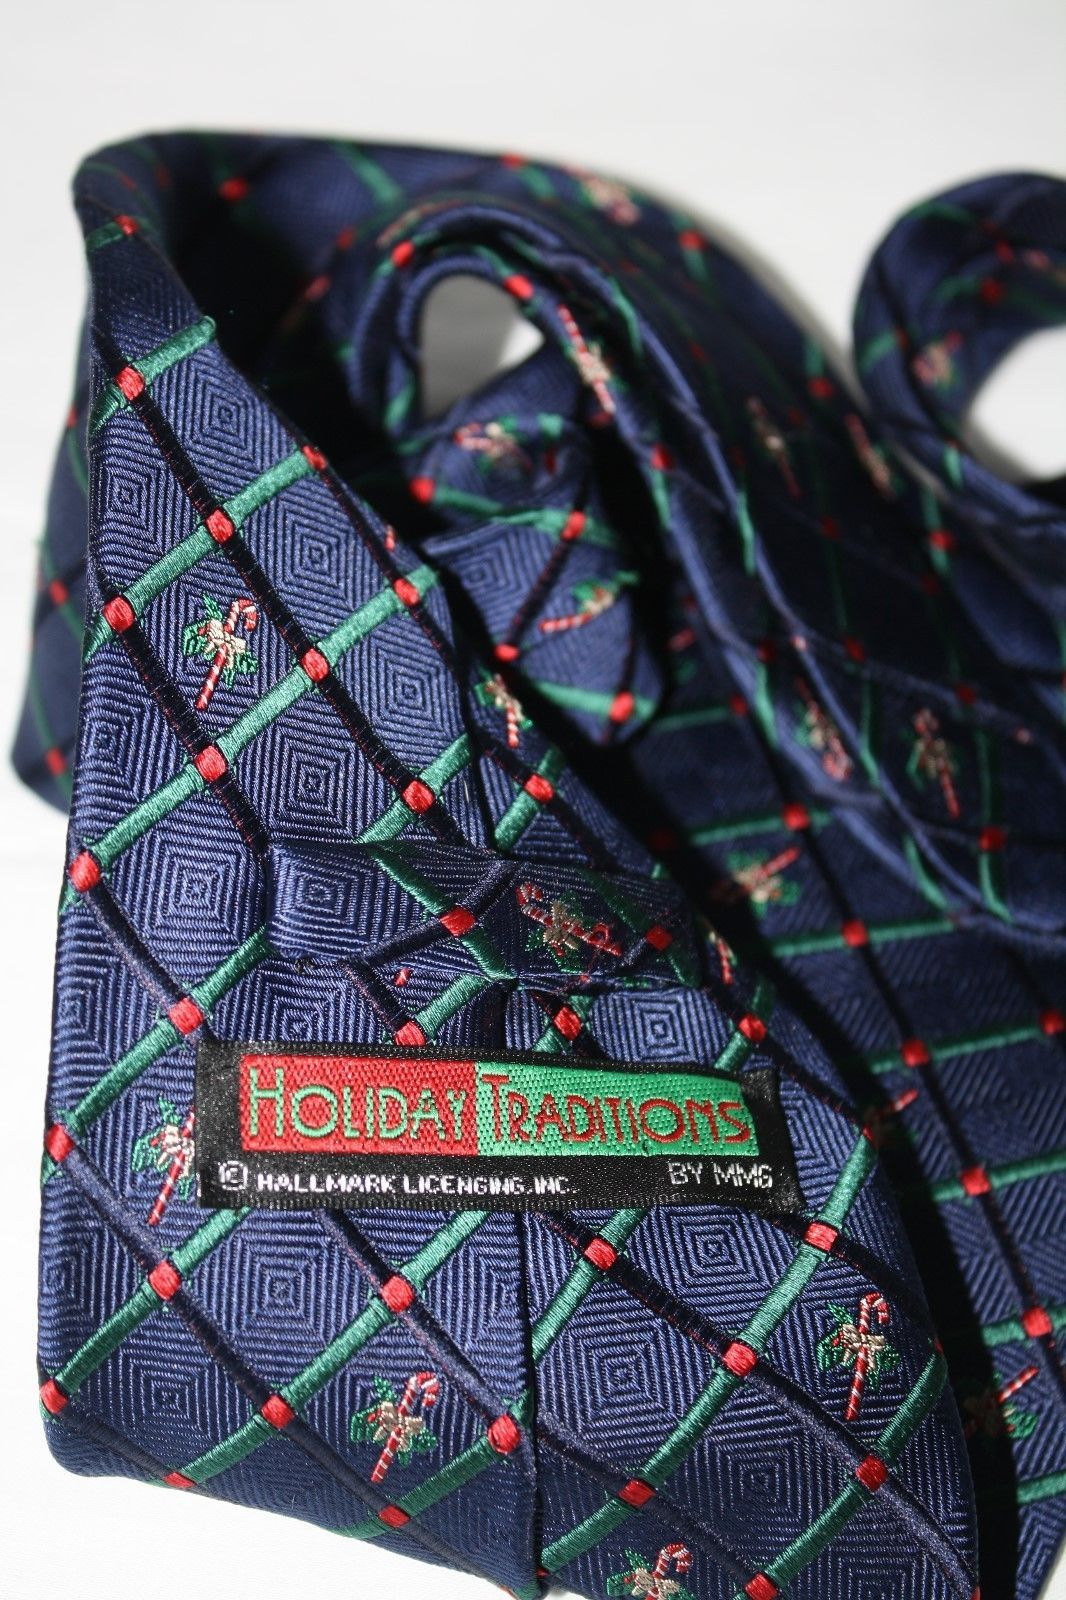 Holiday Traditions Hallmark Candy Canes Tie